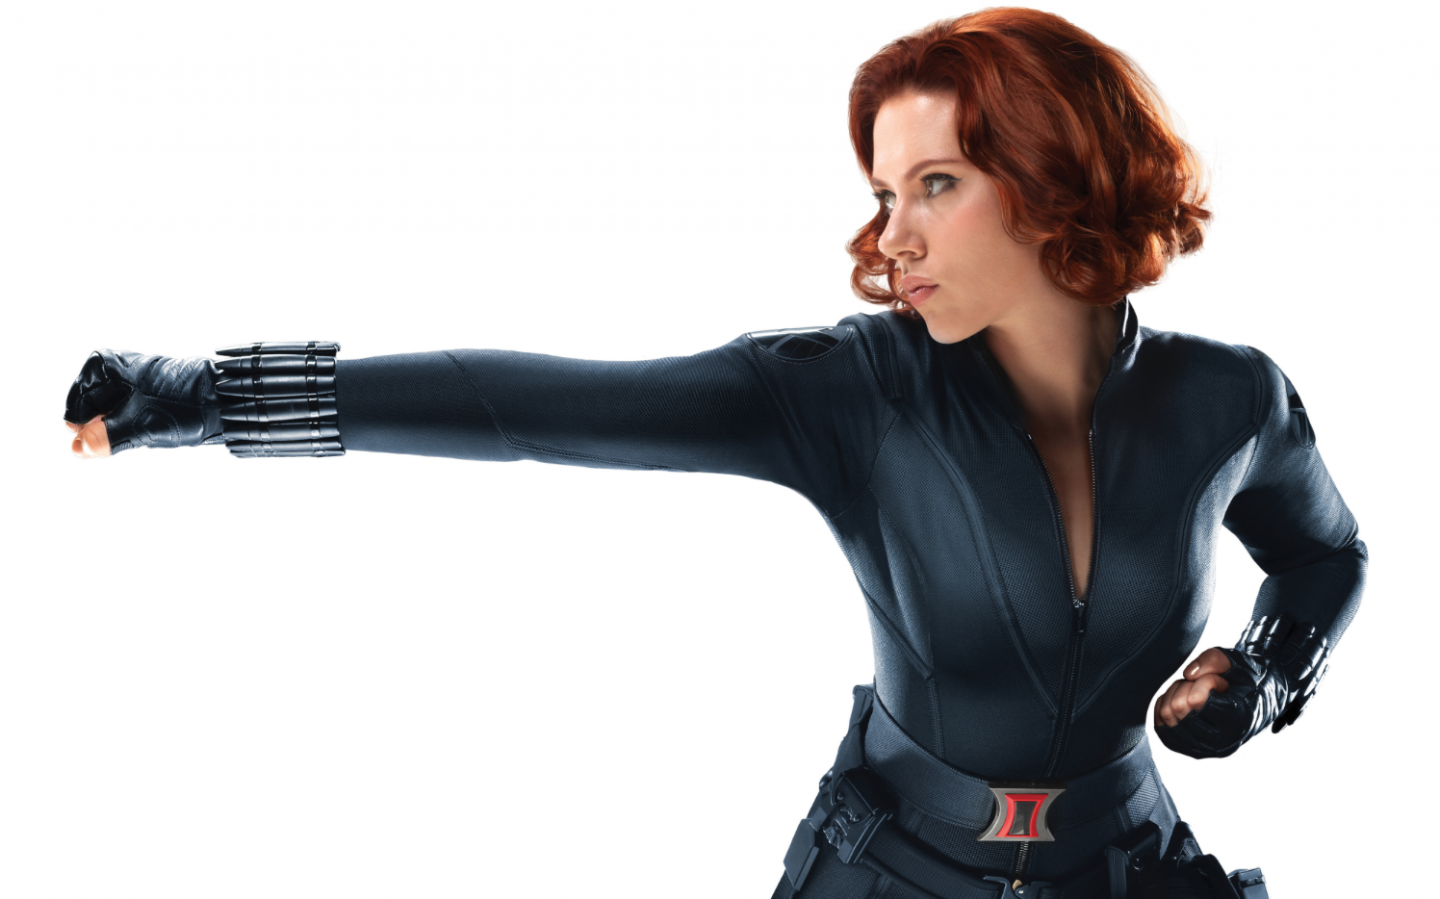 Scarlett Johansson in The Avengers